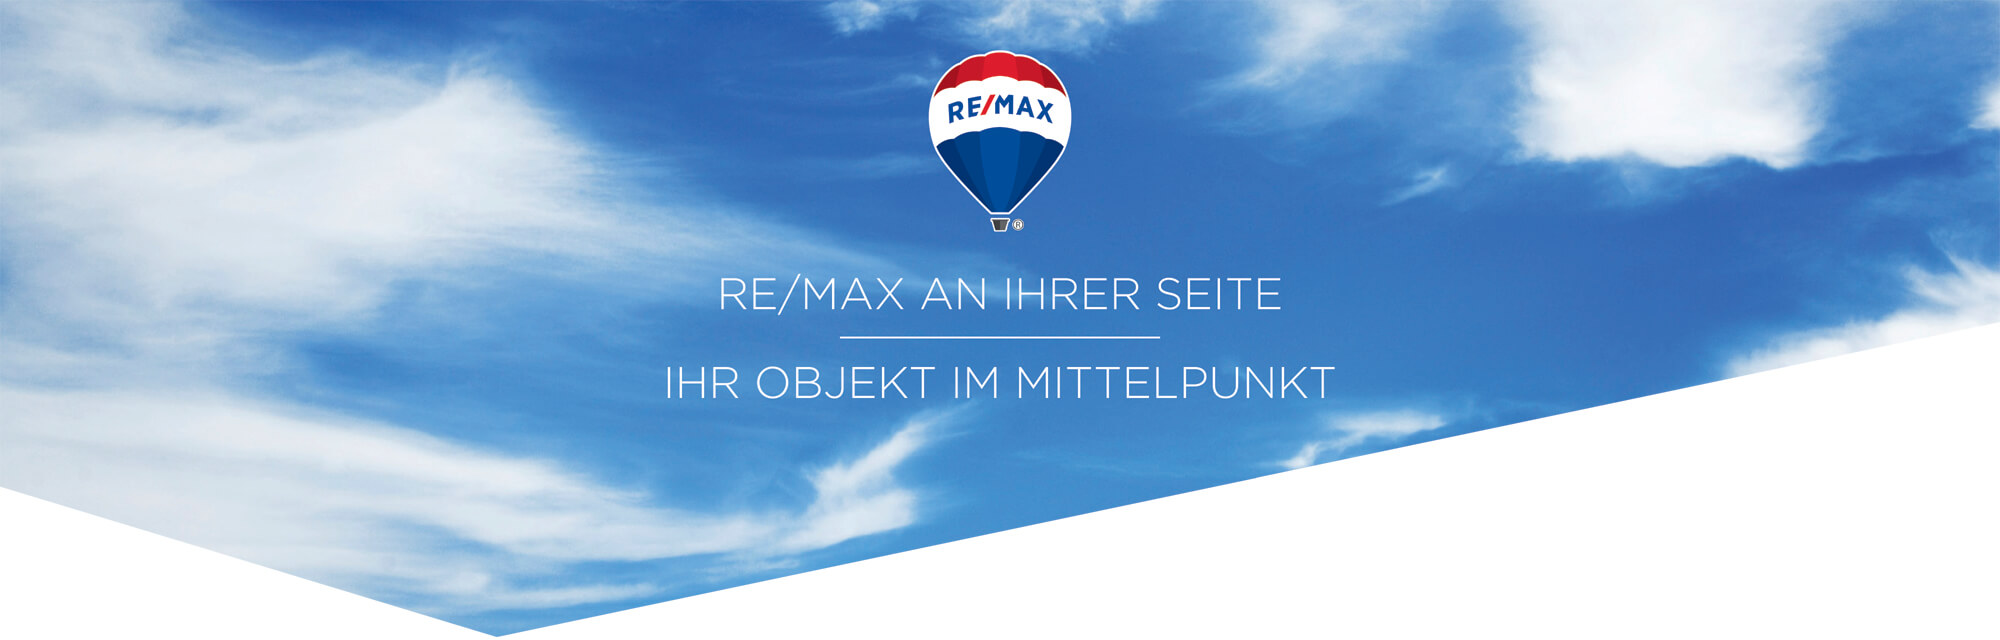 RE/MAX Immobilien Banner